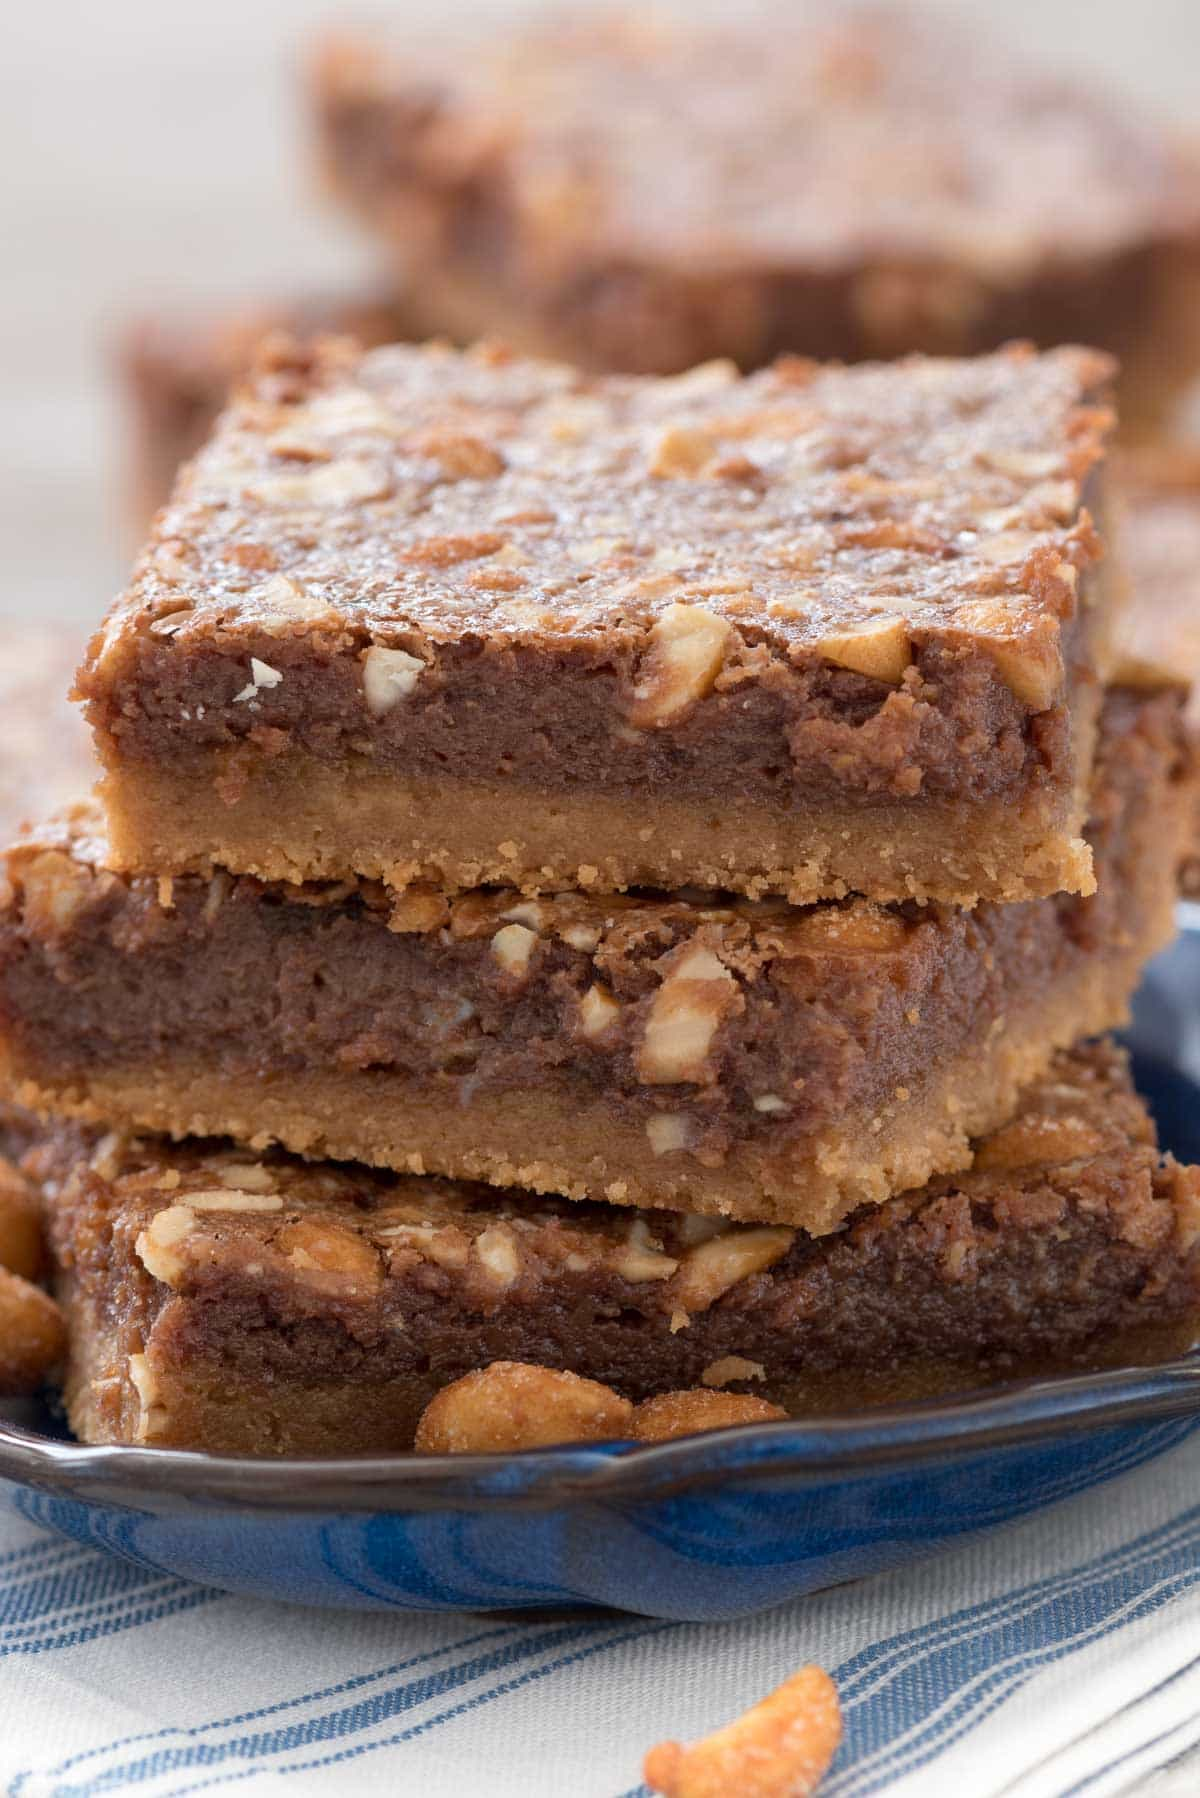 Flourless Peanut Butter Brookies - these chocolate fudge peanut butter cookie bars are accidentally gluten-free and taste like brownie peanut butter cookies!